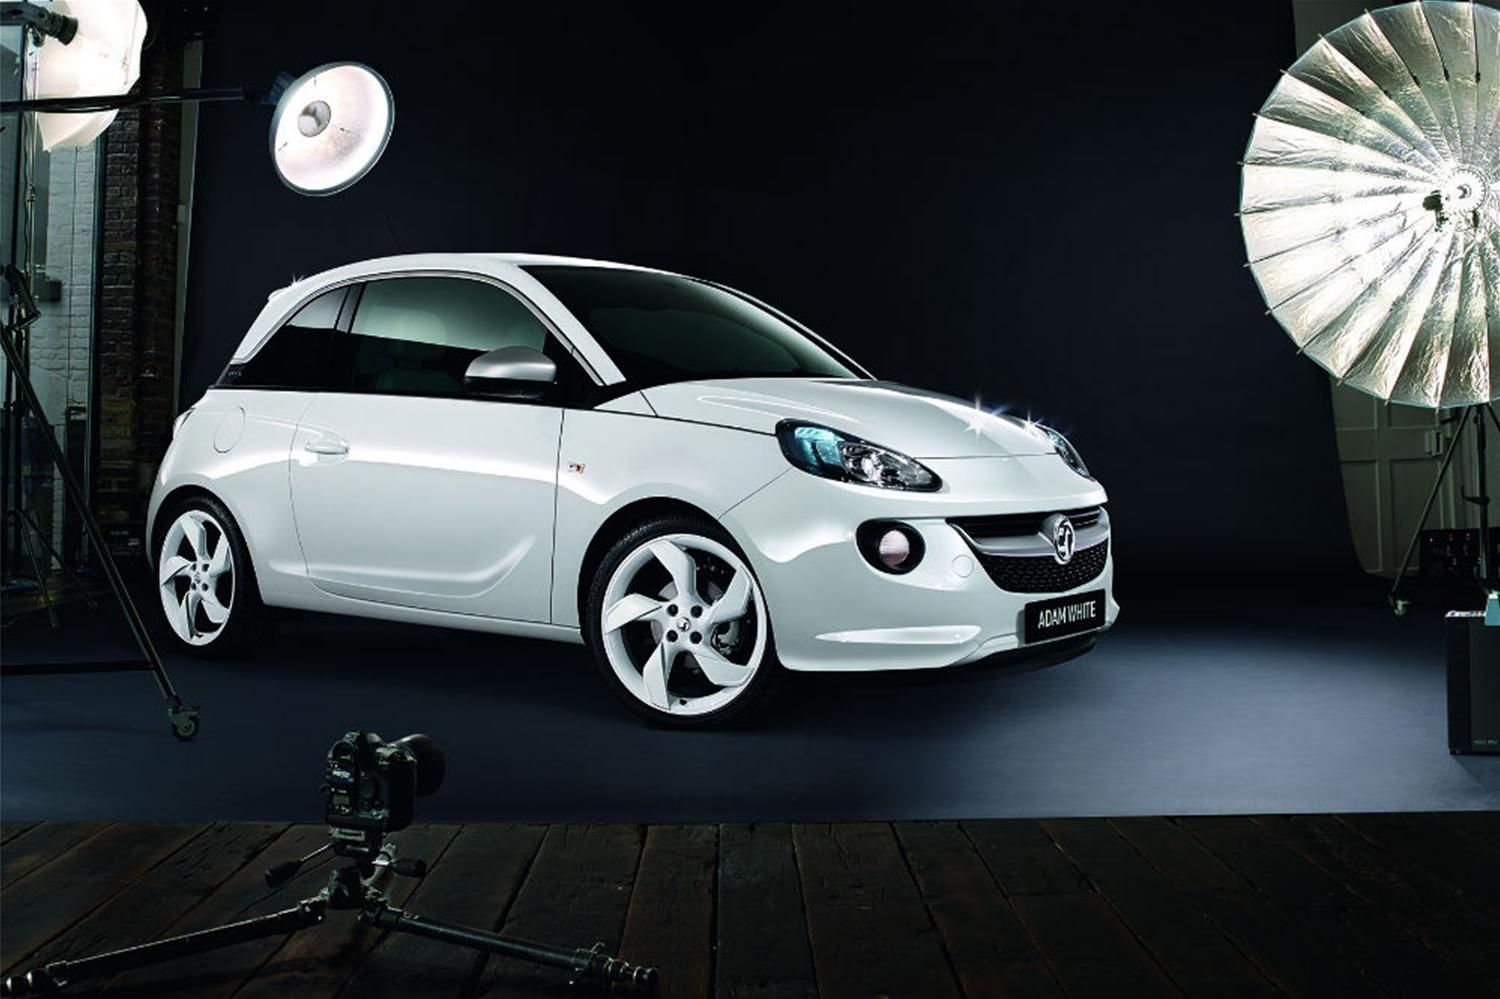 New Vauxhall Adam Black & White Limited Editions